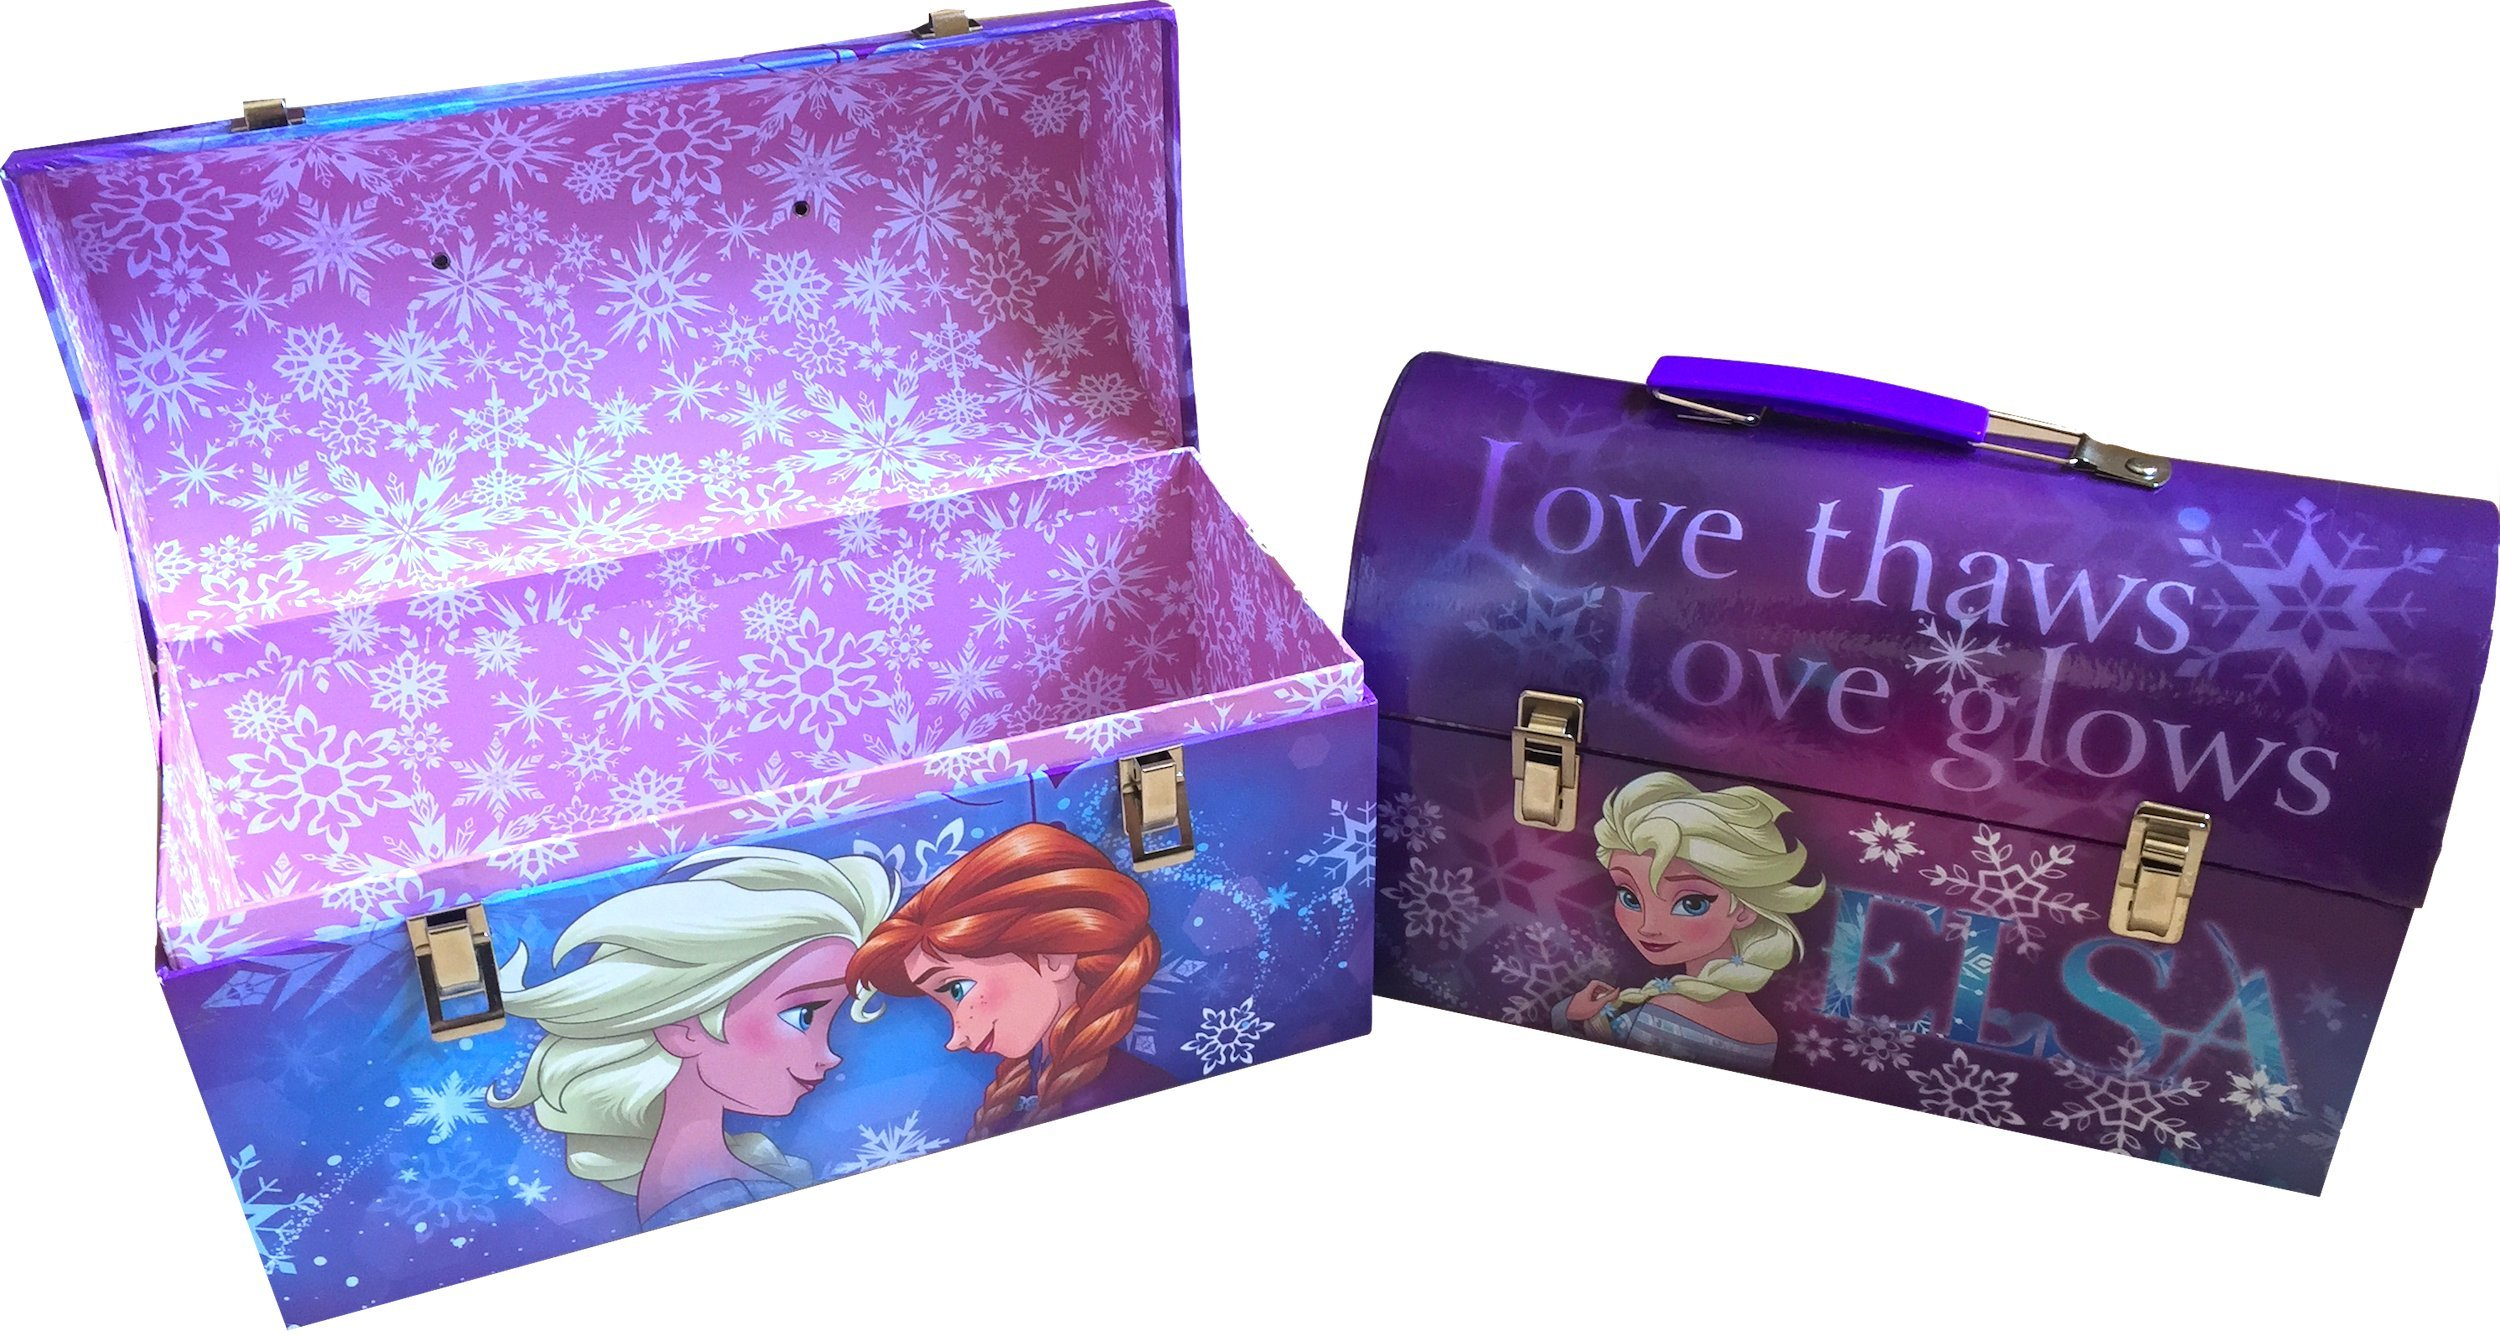 Disney Frozen Anna and Elsa Love Sisters Forever Children's Paperboard Treasure Chests , Small One Fits Inside Larger One Perfect Disney Frozen Gift Set Perfect Storing Your Magical Toys